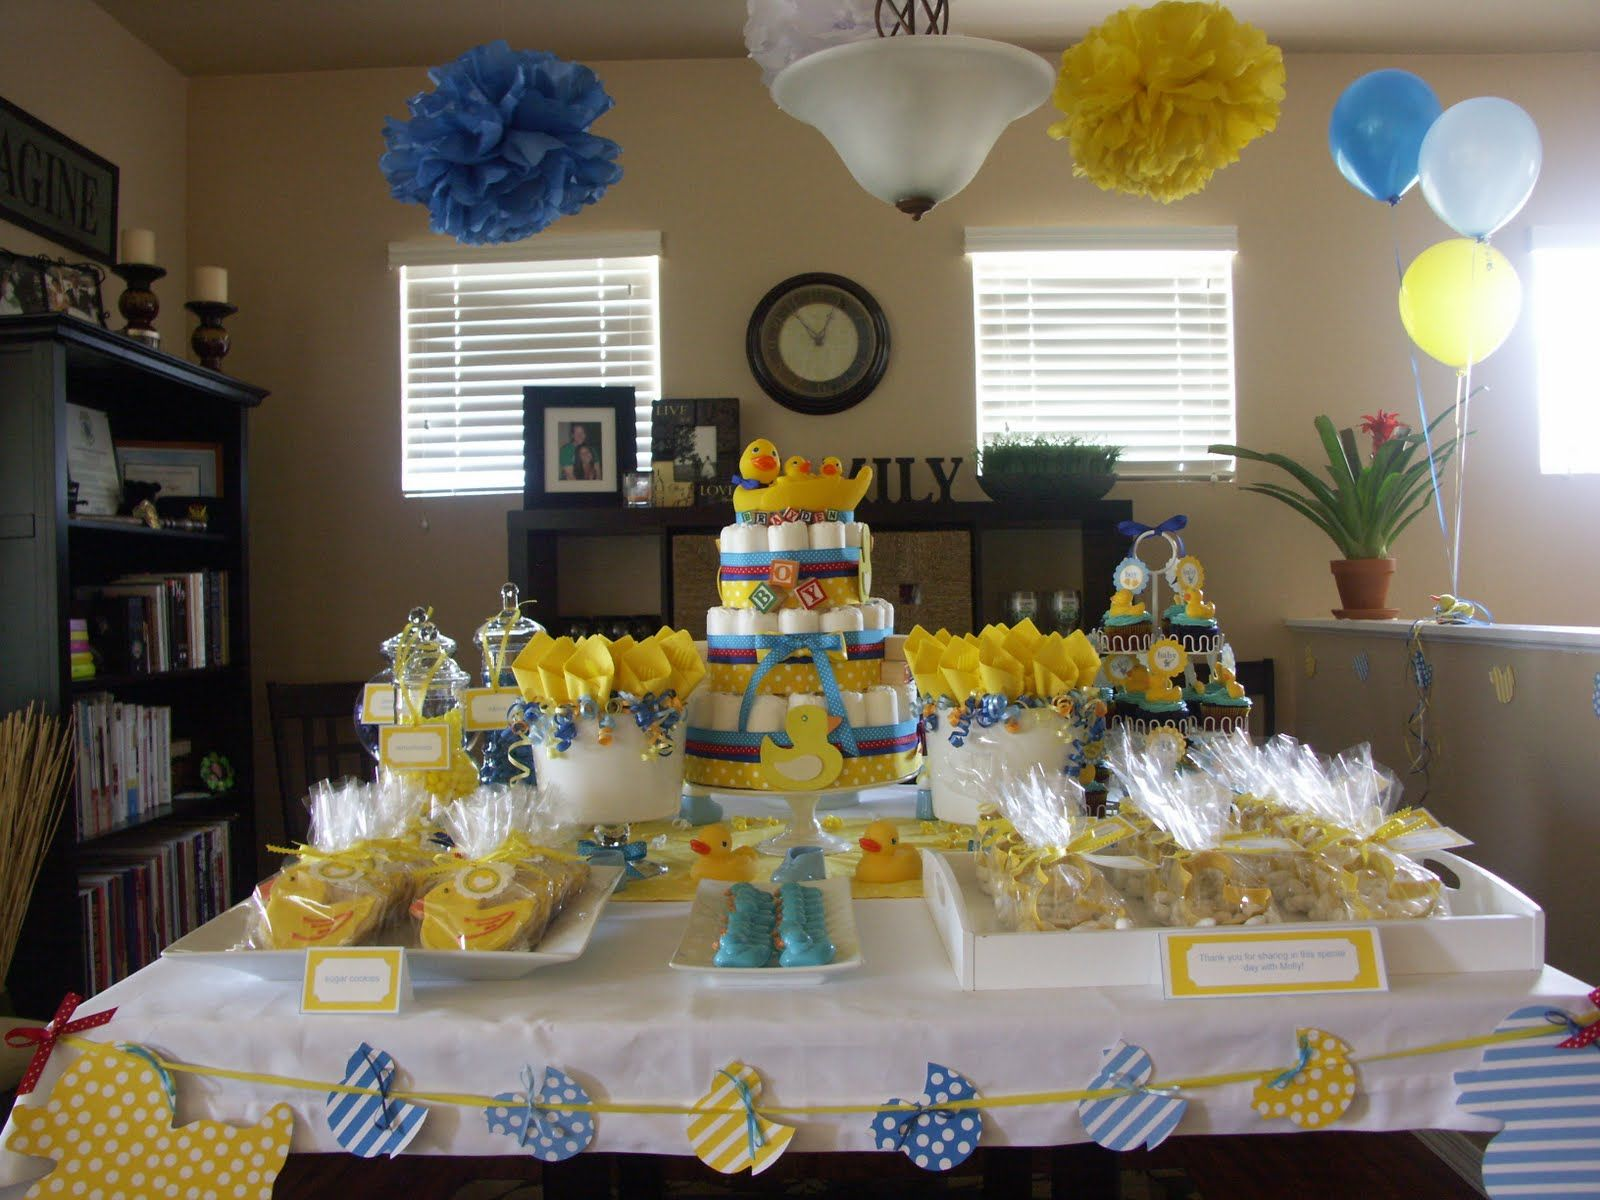 Rubber Ducky Party Decorations | The Rubber Ducky Baby Shower Collection